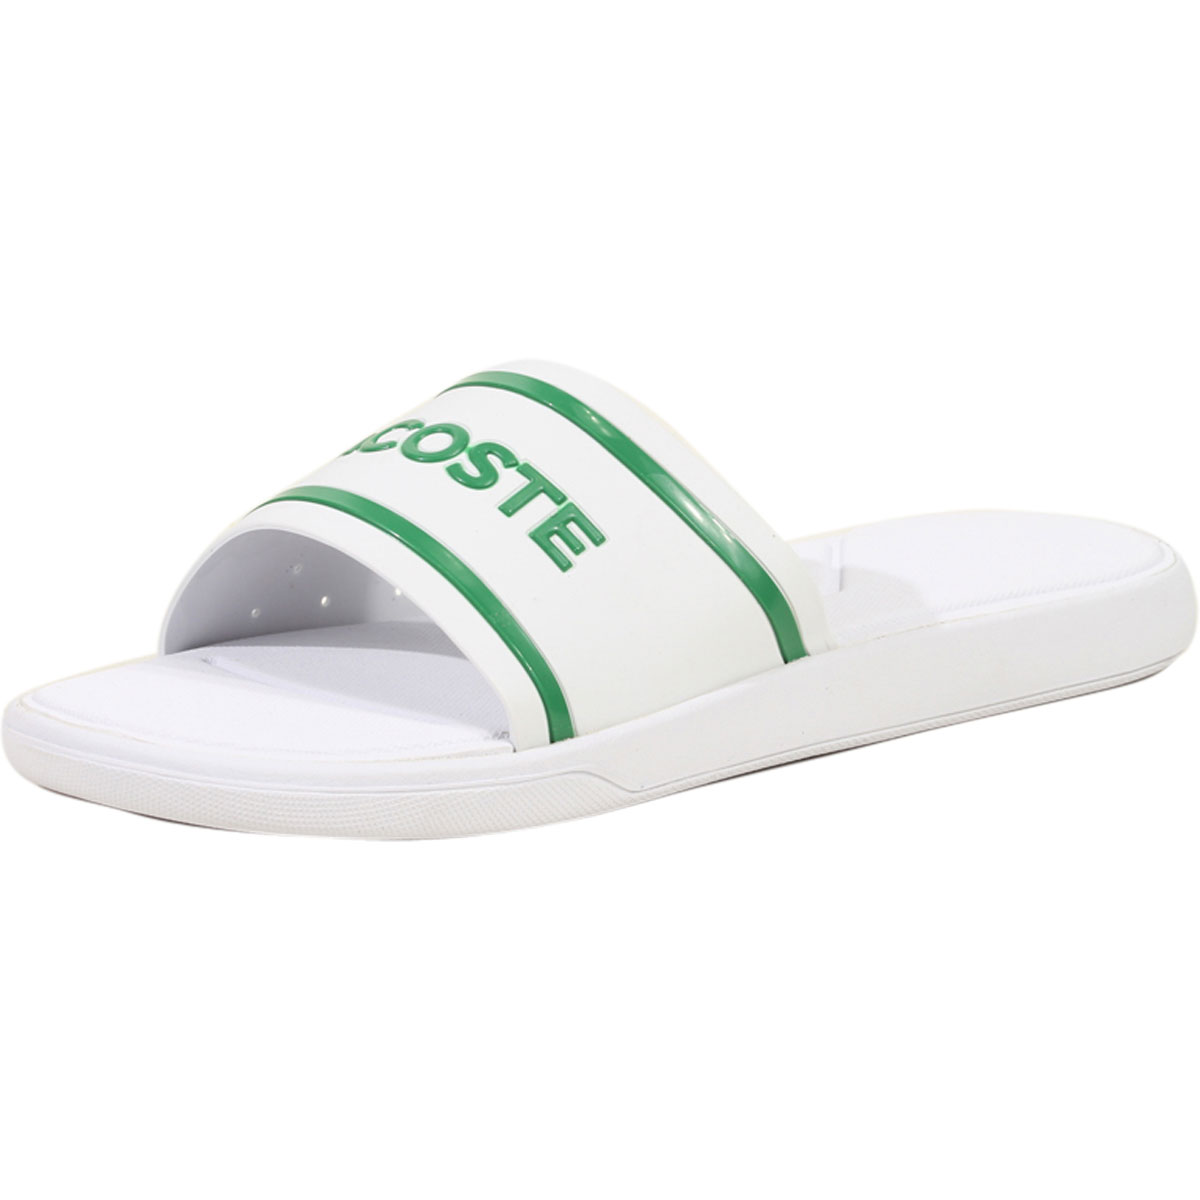 a0d6f89252b9 Lacoste Men s L.30-Slide-118 Slip-On Sandals Shoes